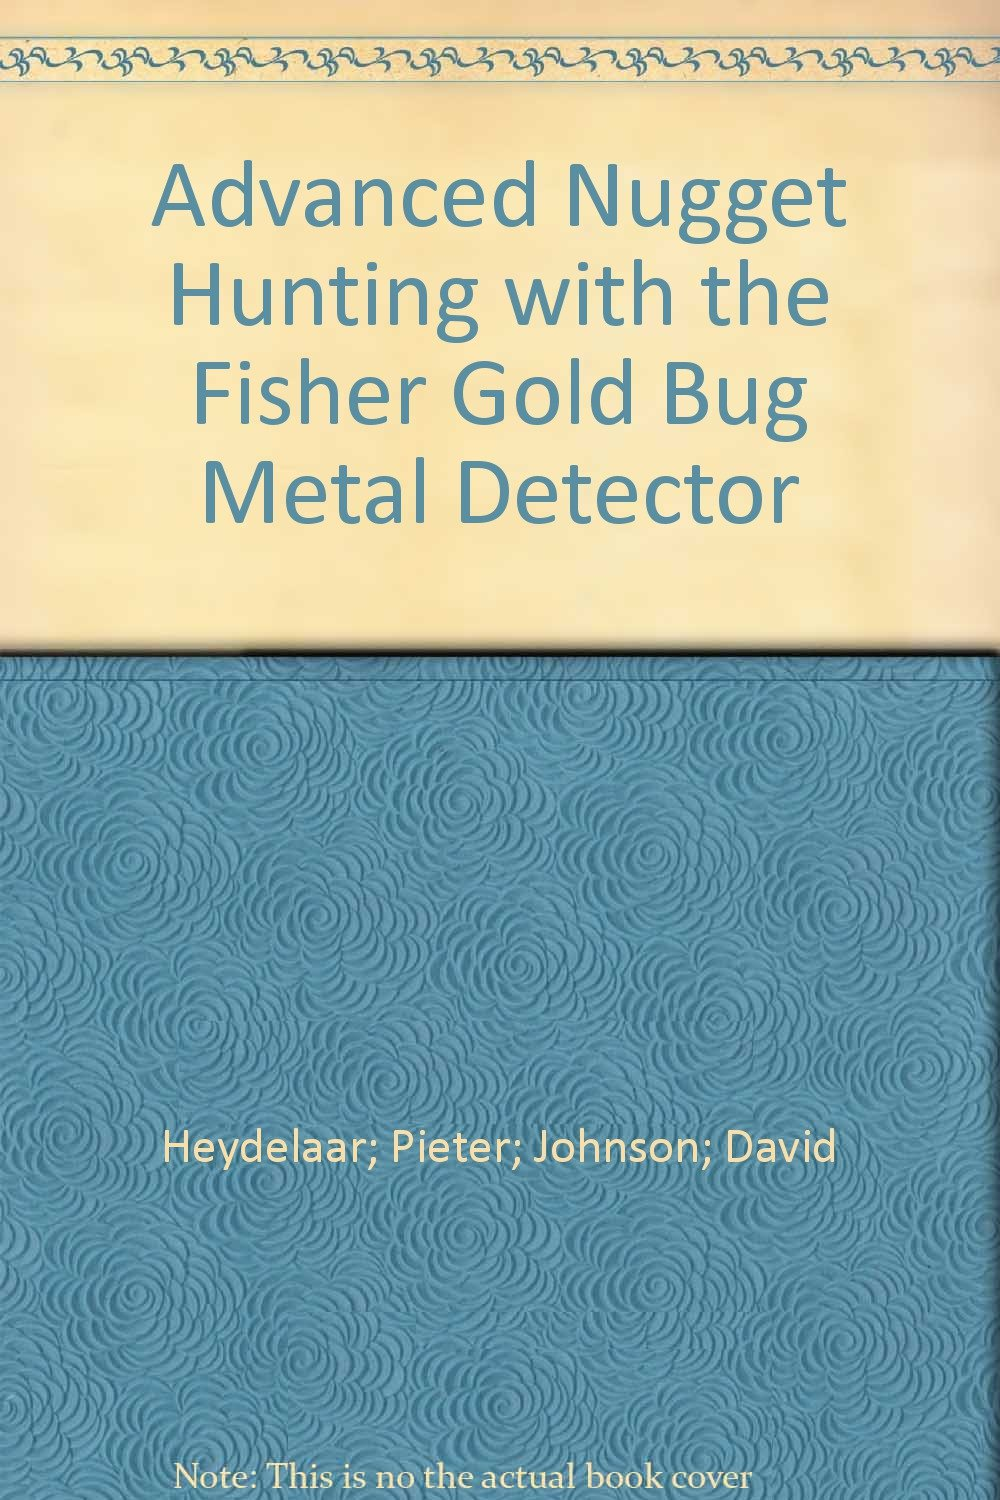 Advanced Nugget Hunting with the Fisher Gold Bug Metal Detector Paperback – 1993